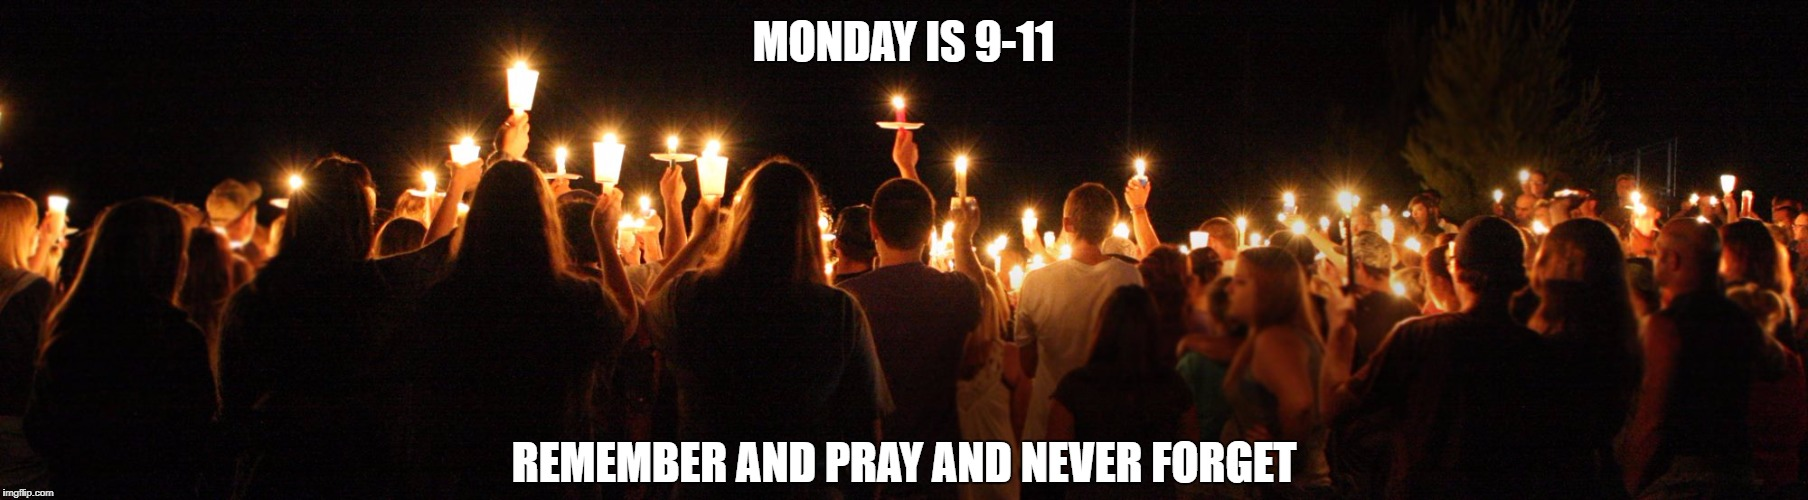 MONDAY IS 9-11 REMEMBER AND PRAY AND NEVER FORGET | image tagged in september 11th candlelight vigil | made w/ Imgflip meme maker